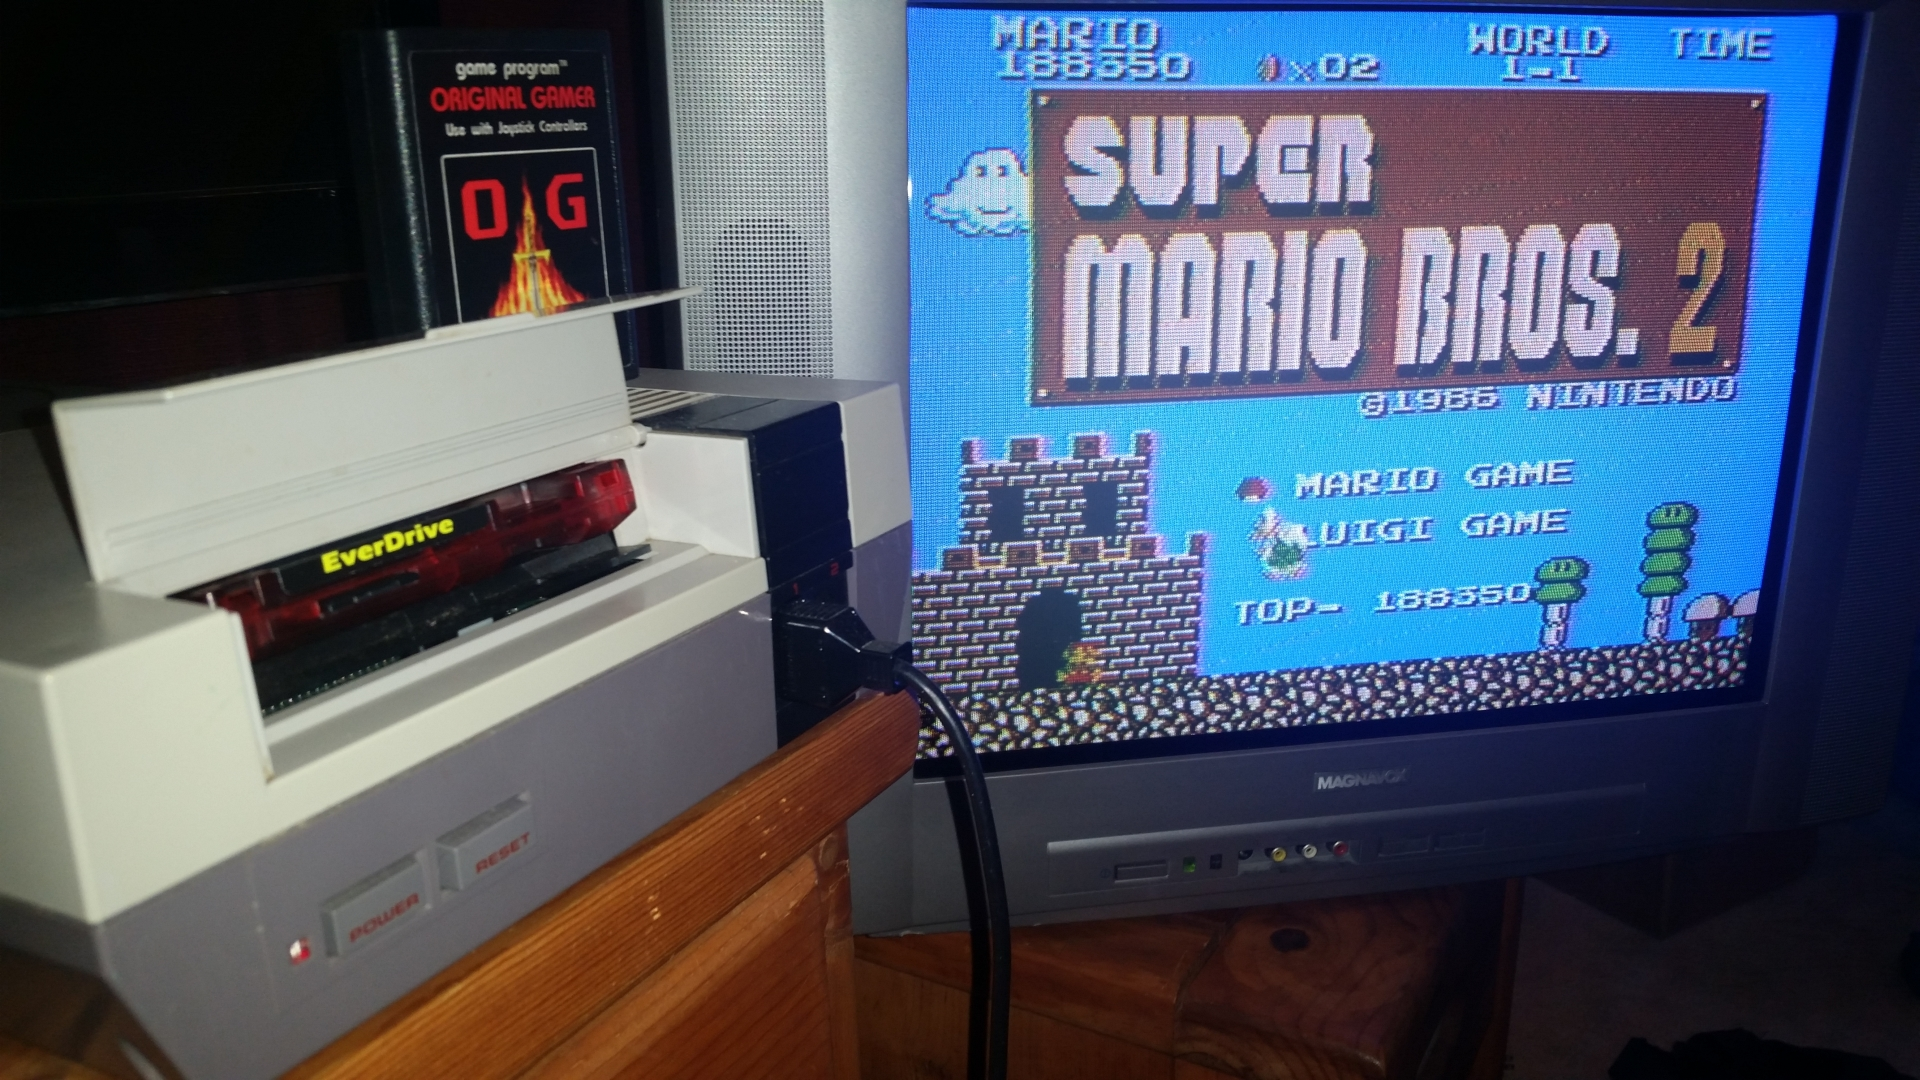 OriginalGamer: Super Mario Bros. 2 [Japanese Version] (NES/Famicom) 188,350 points on 2016-09-19 01:56:02